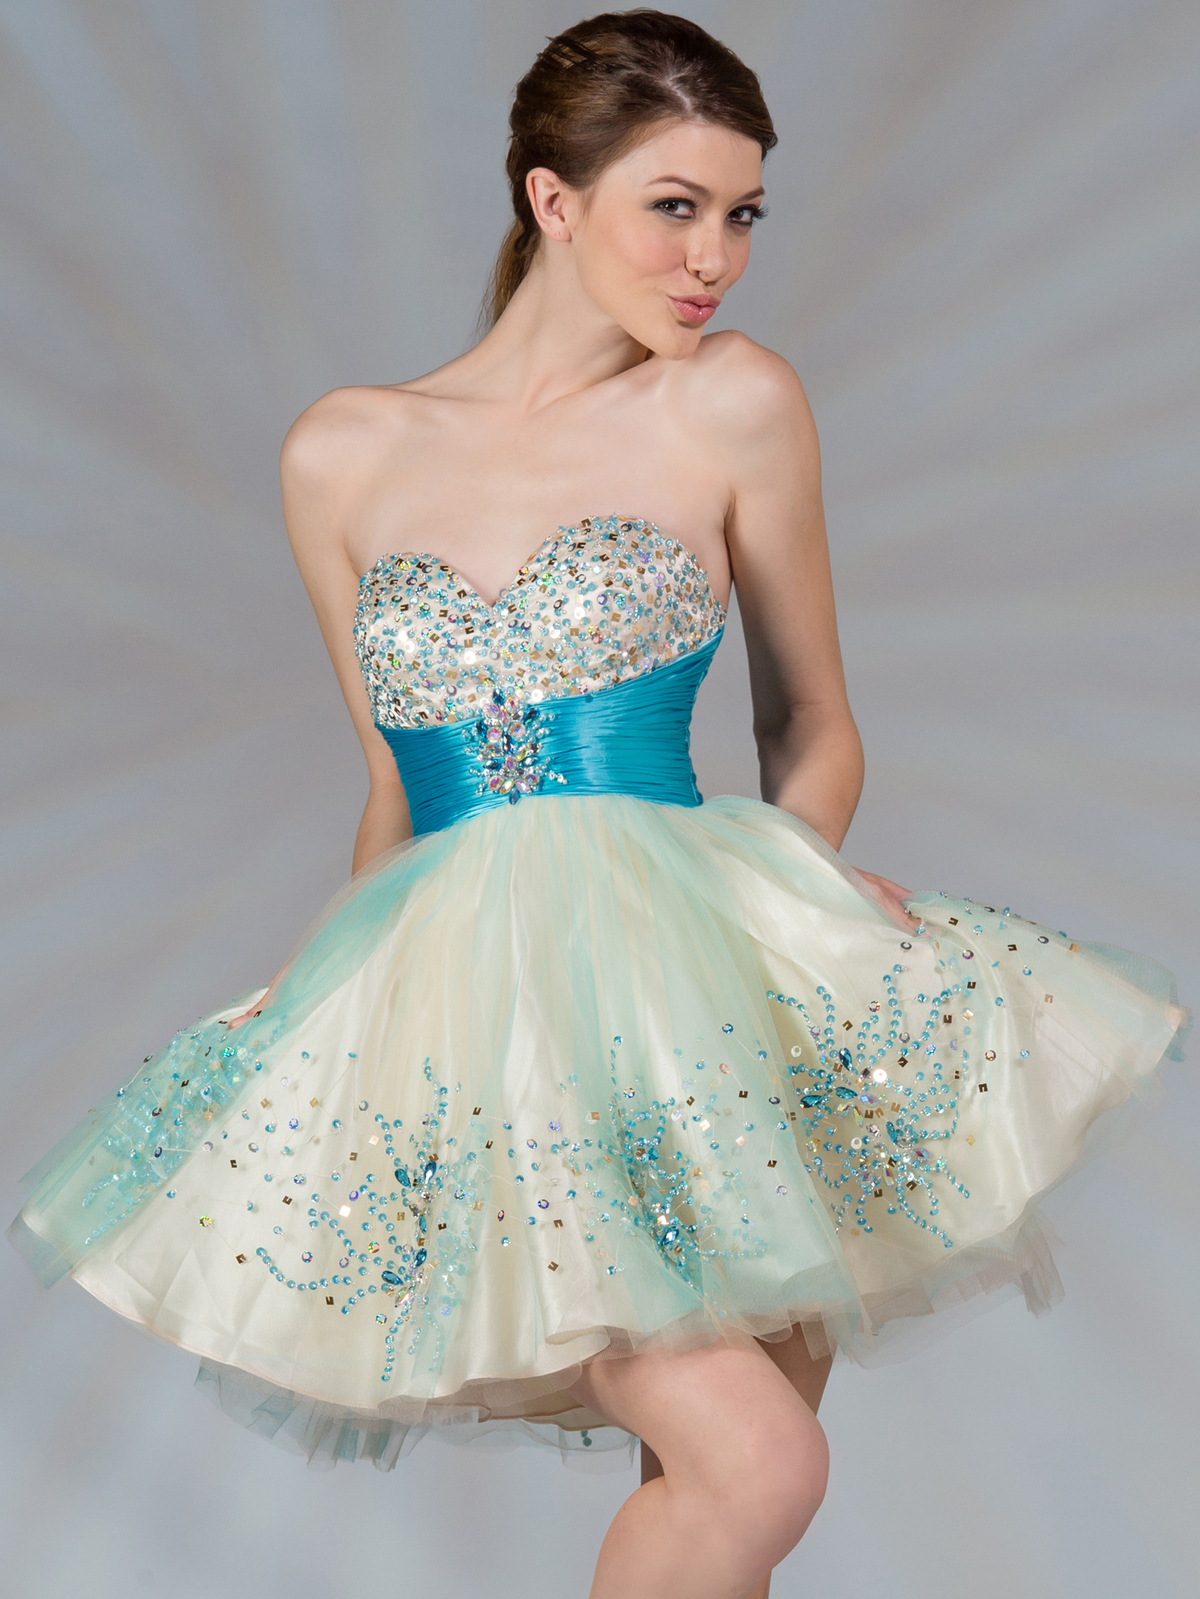 Clearance Homecoming Dresses - Women Dress Image